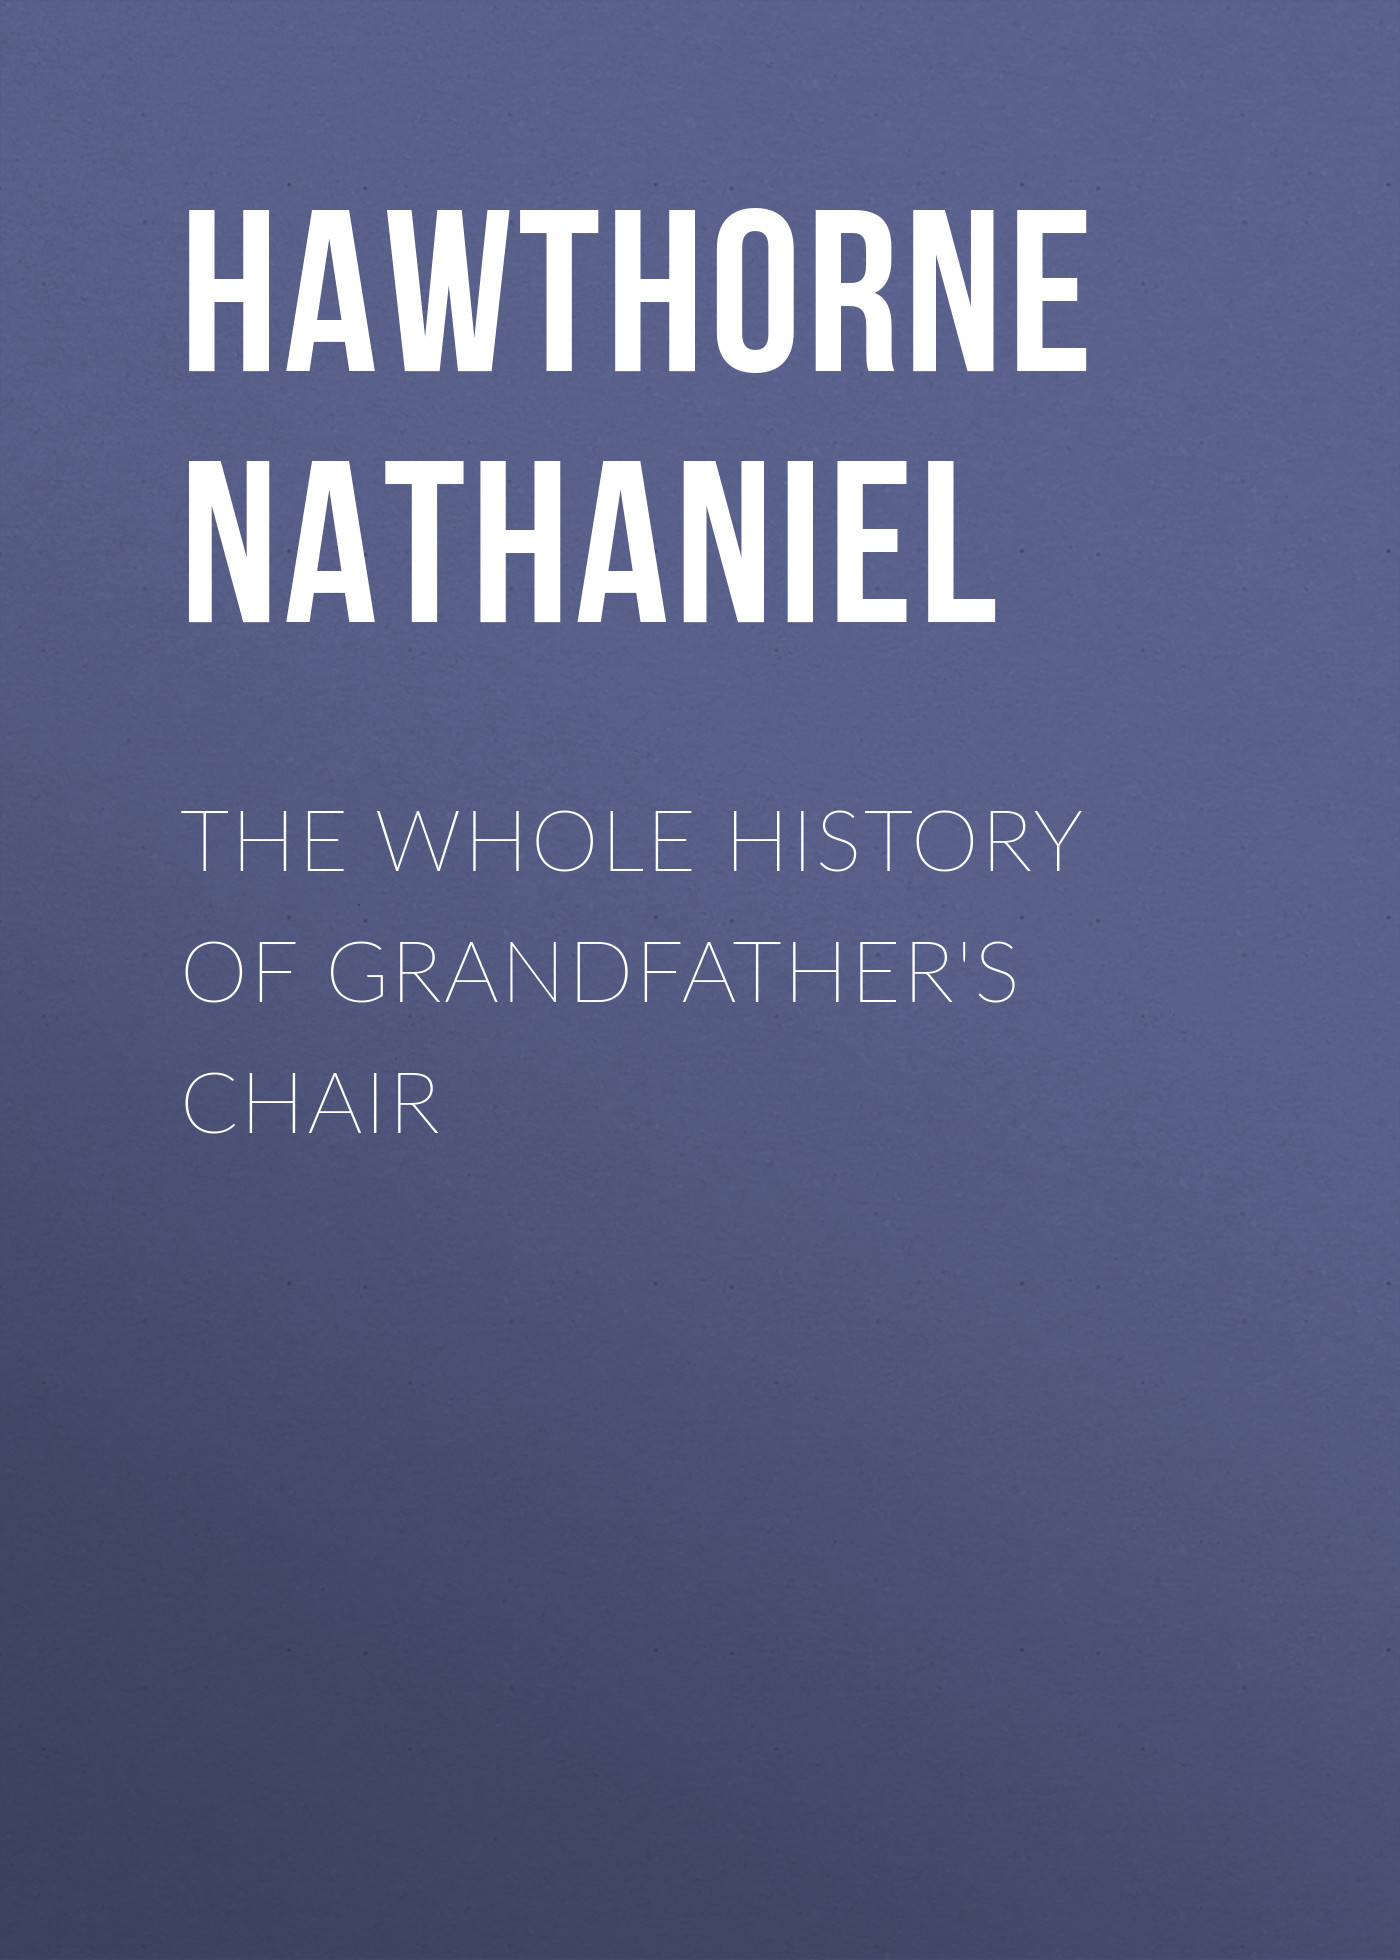 Hawthorne Nathaniel The Whole History of Grandfather's Chair